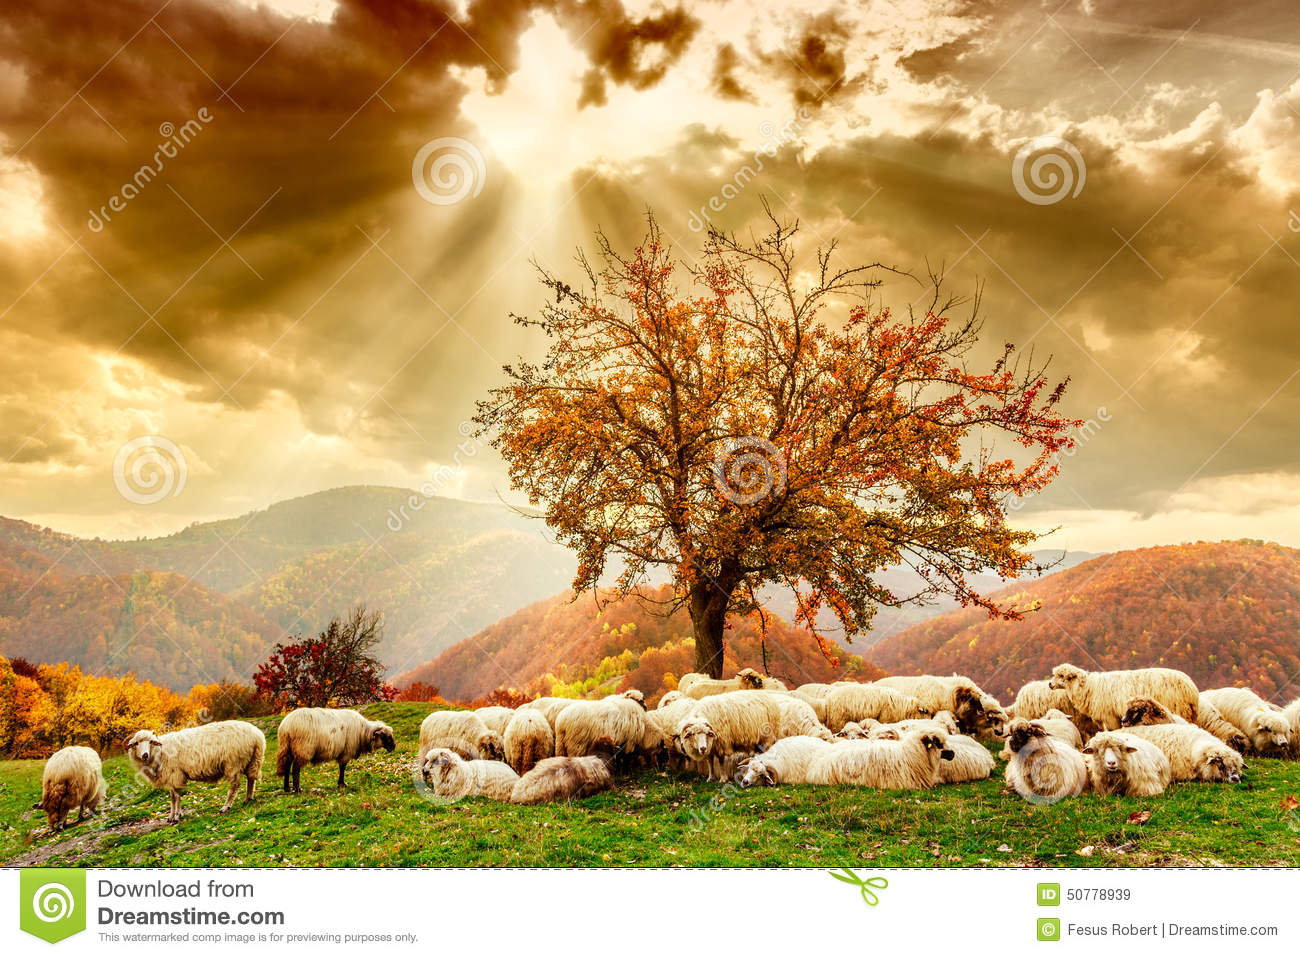 Sheep under the tree and dramatic sky